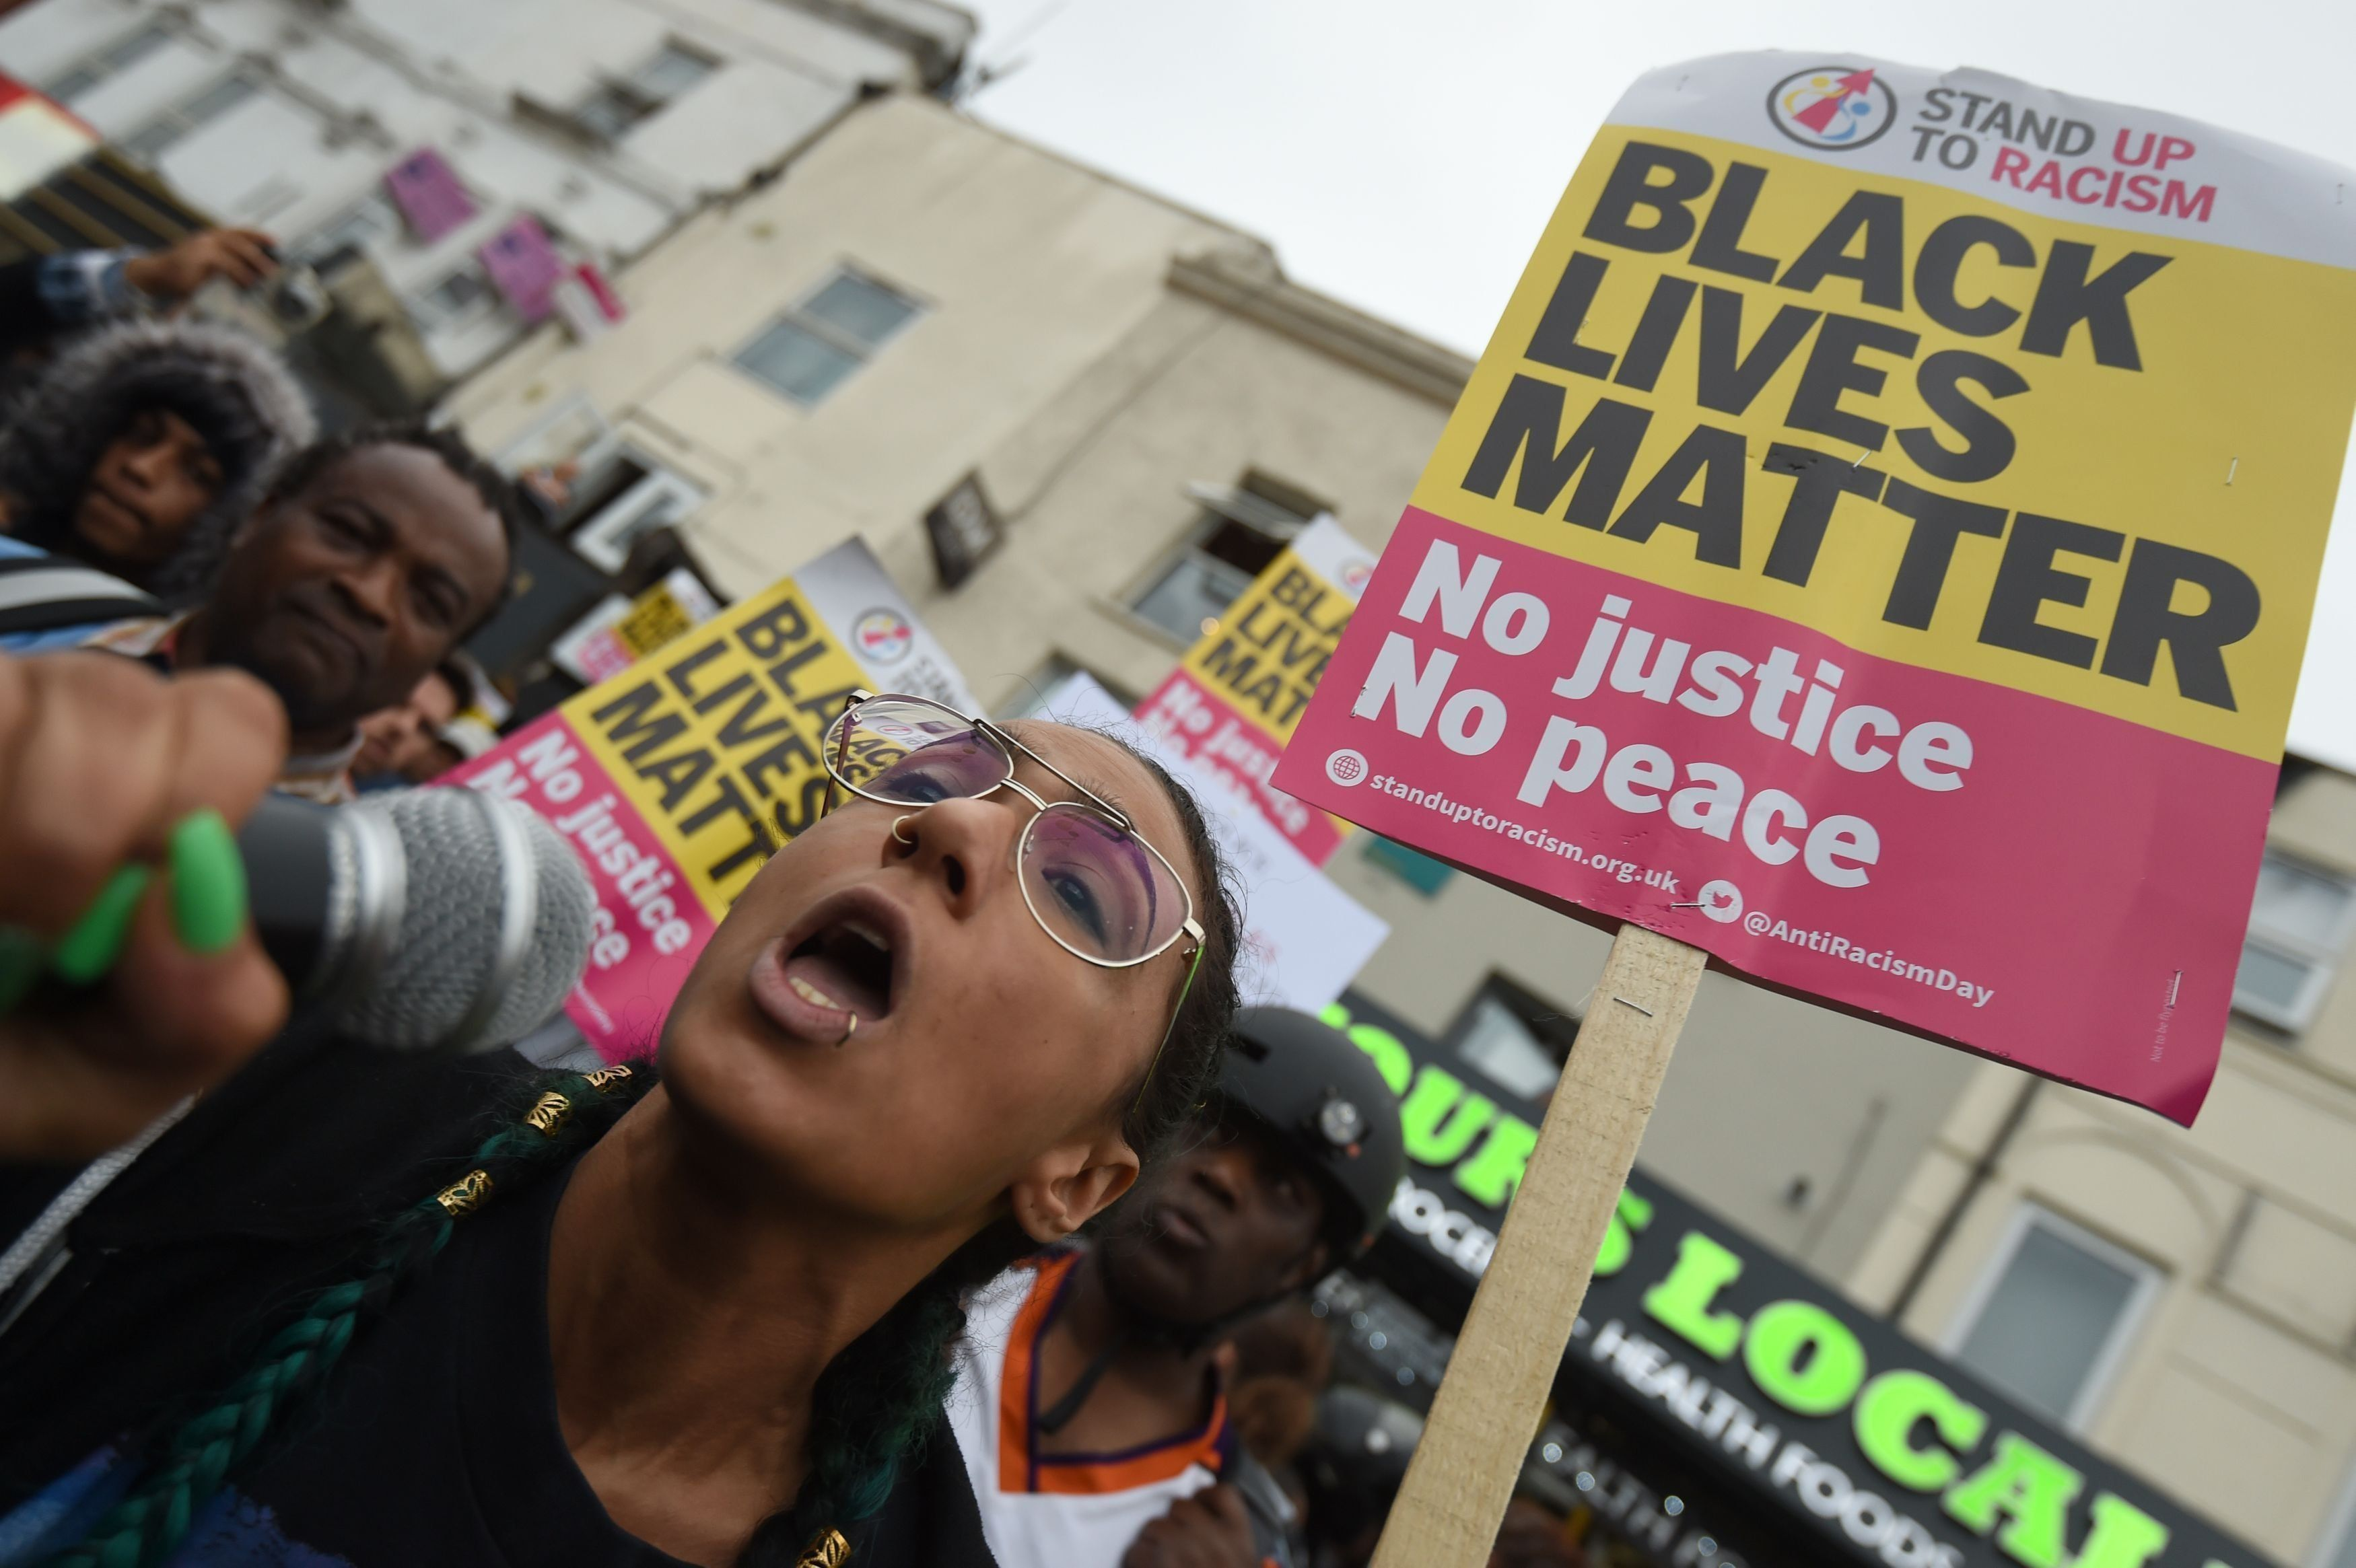 Met Police Officers Are Disproportionately Likely To Use Force Against Black Men